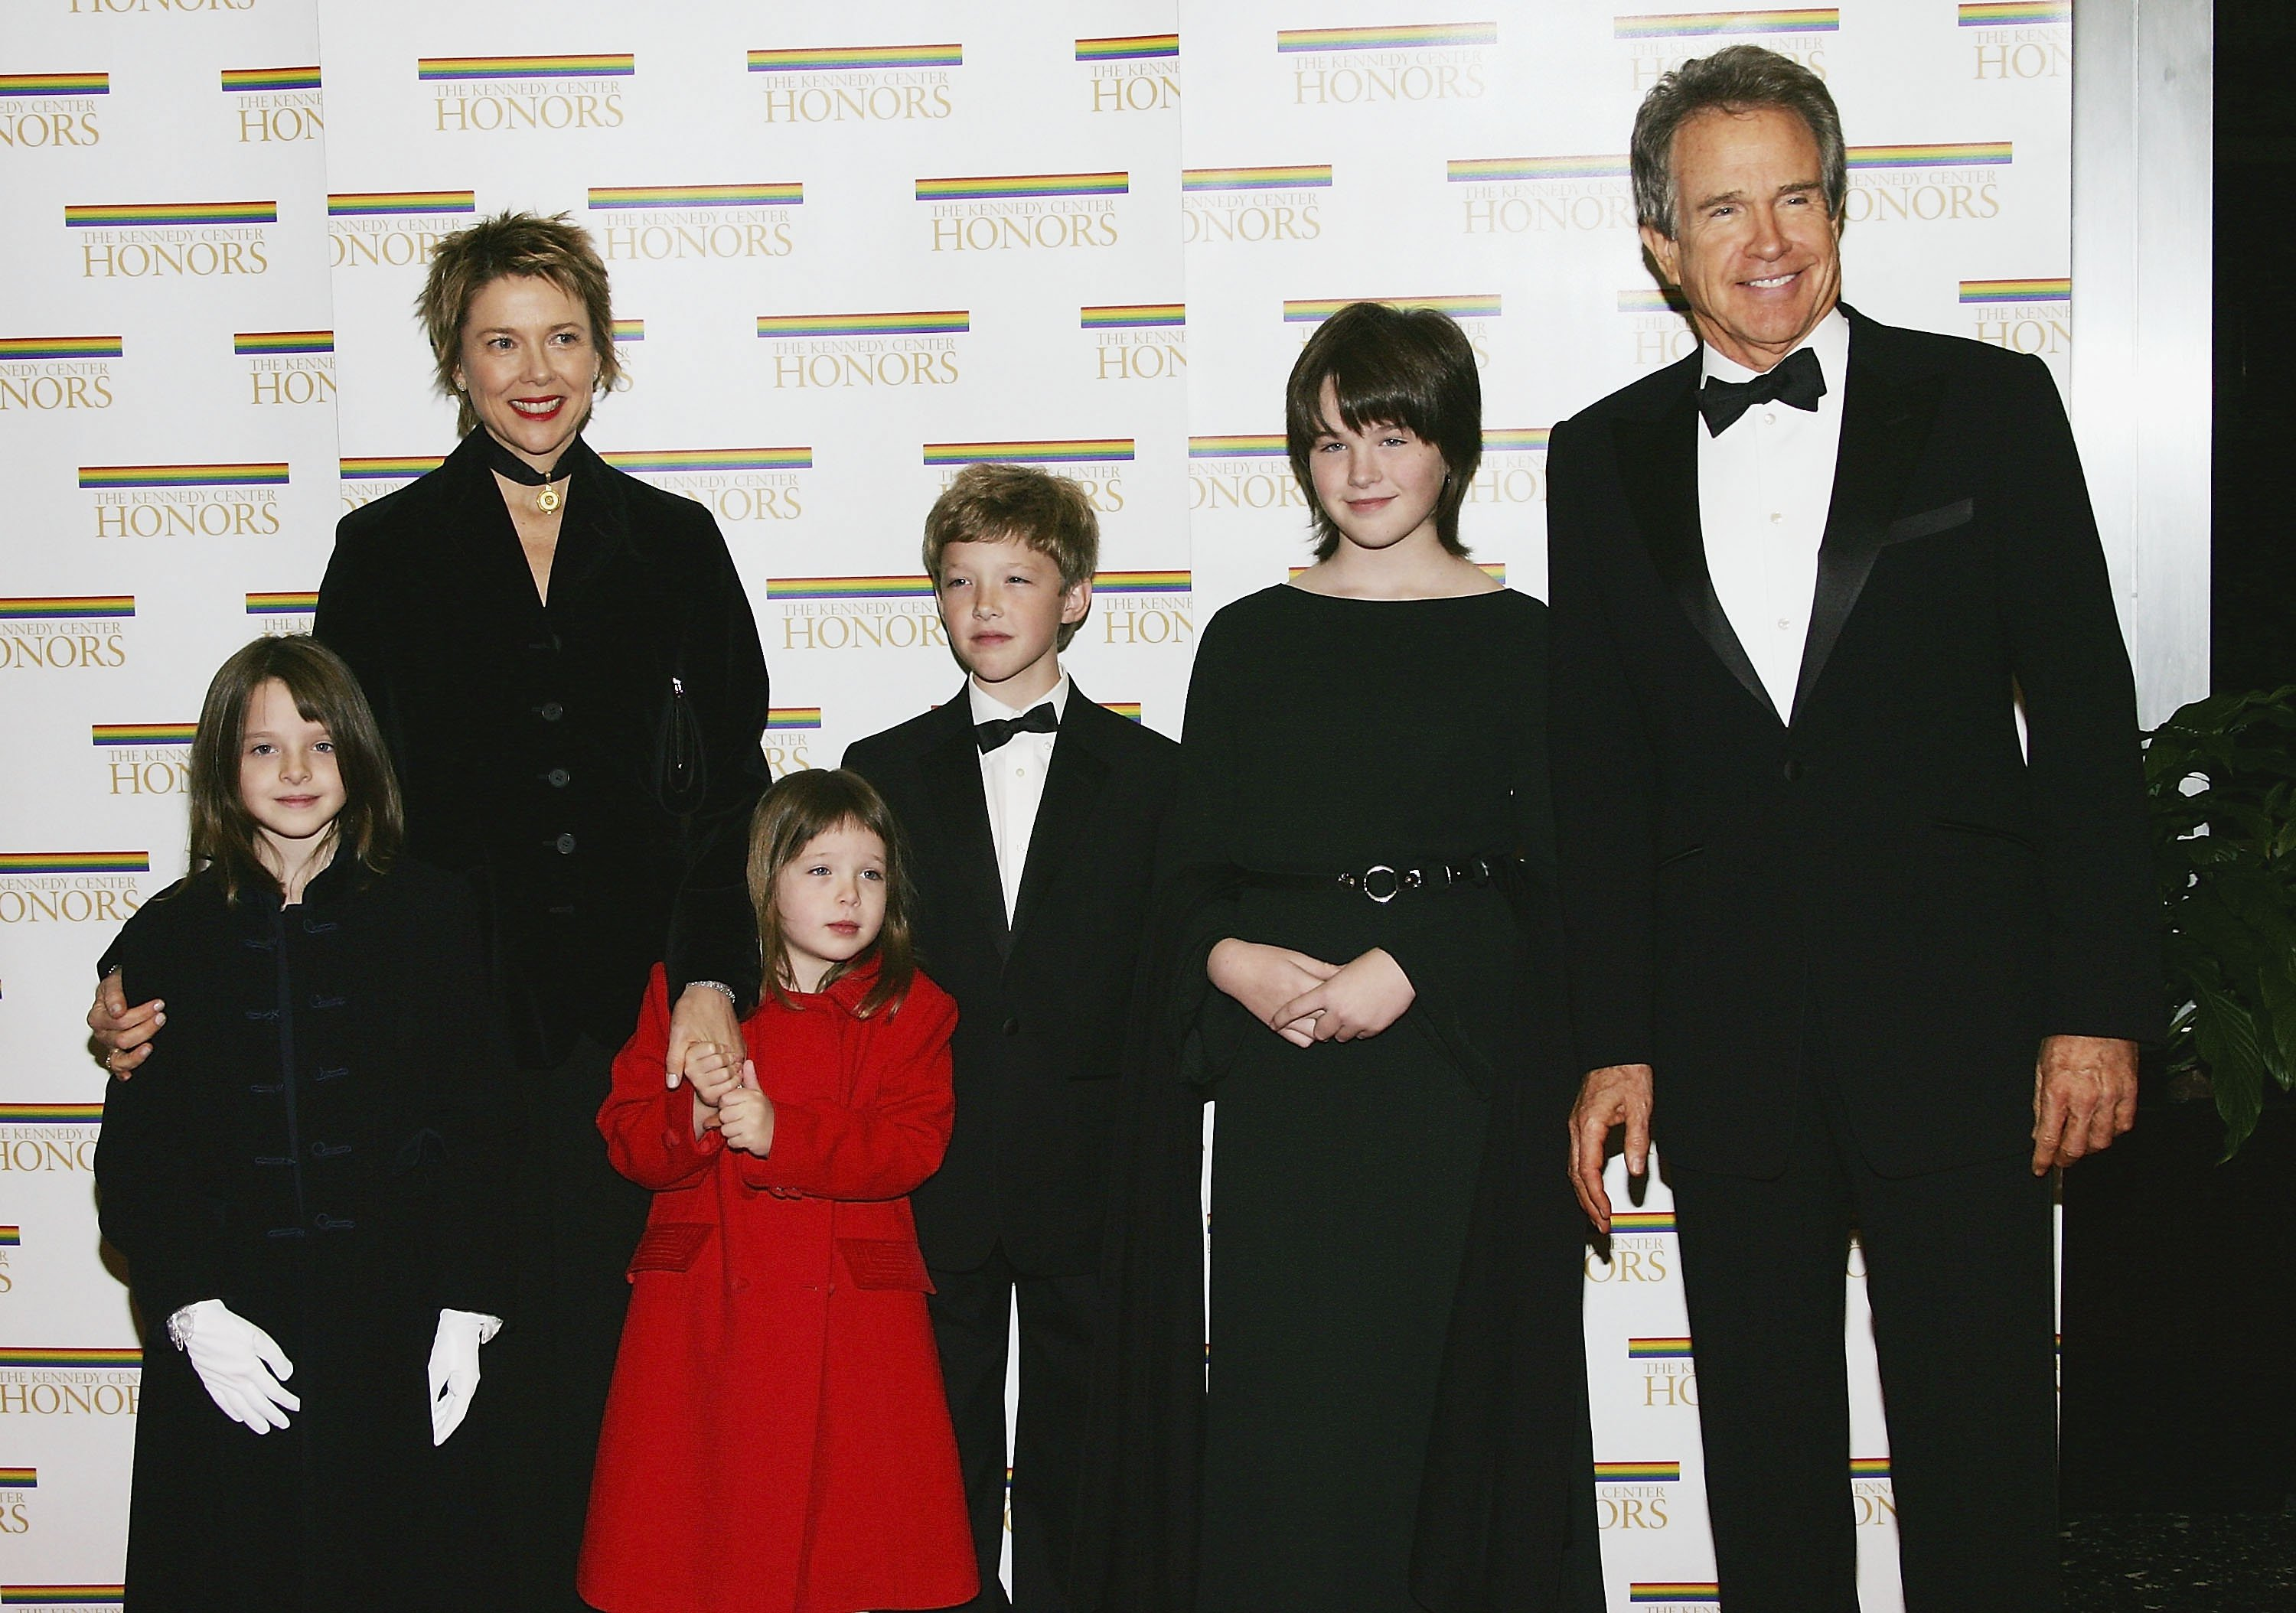 Warren Beatty poses with wife Annette Bening and children Isabel, Ella, Benjamin and Kathlyn at the 27th Annual Kennedy Center Honors at U.S. Department of State, December 4, 2004, in Washington, DC. | Source: Getty Images.